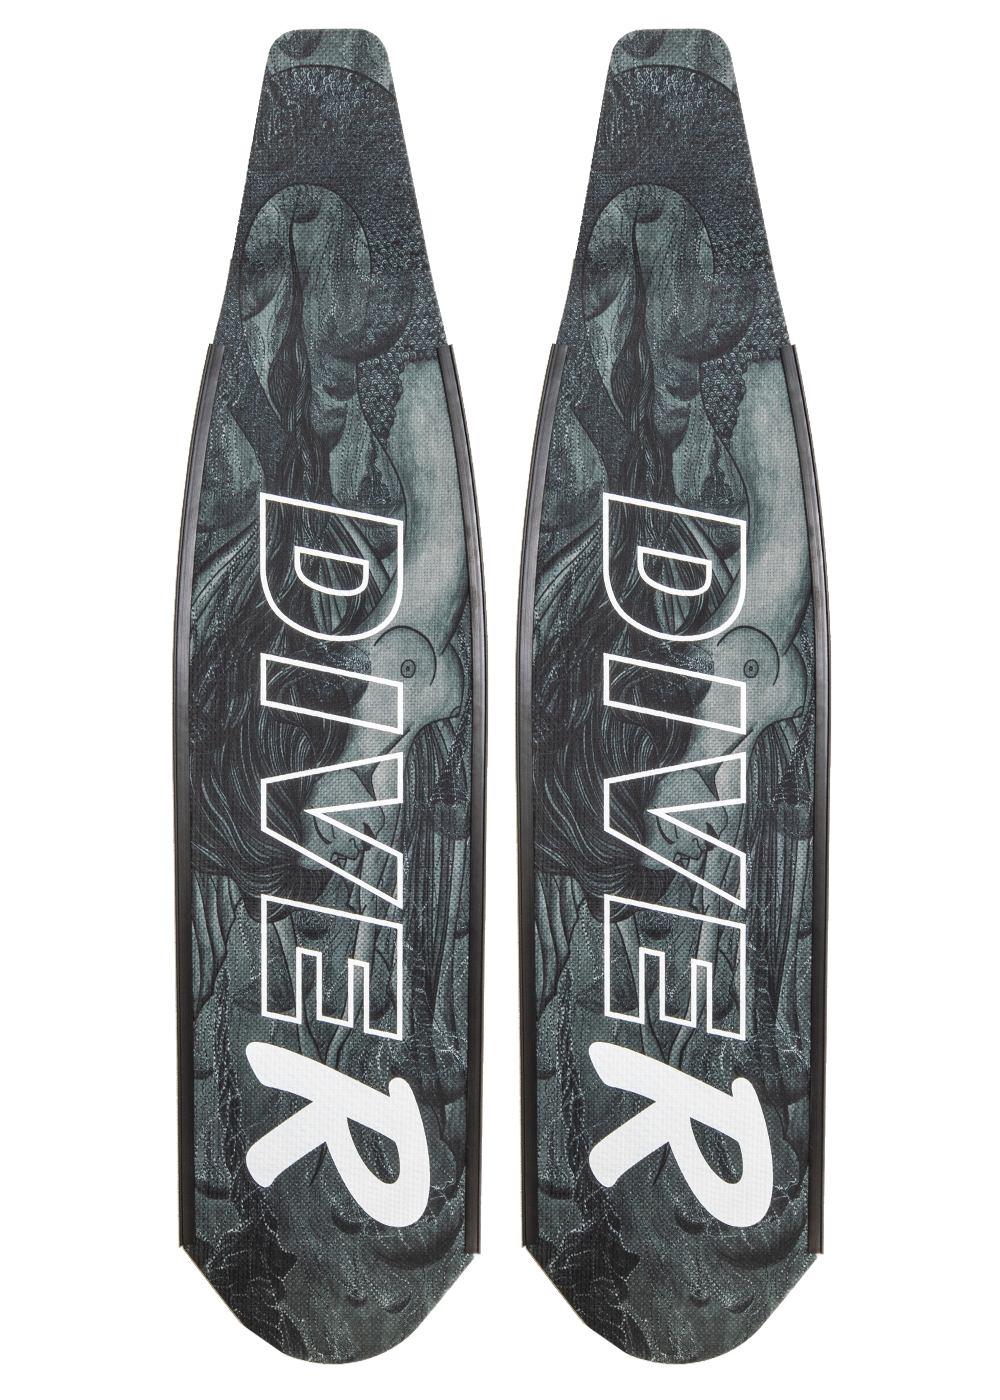 DiveR Spearfishing Blades Carbon Monochrome Mermaid